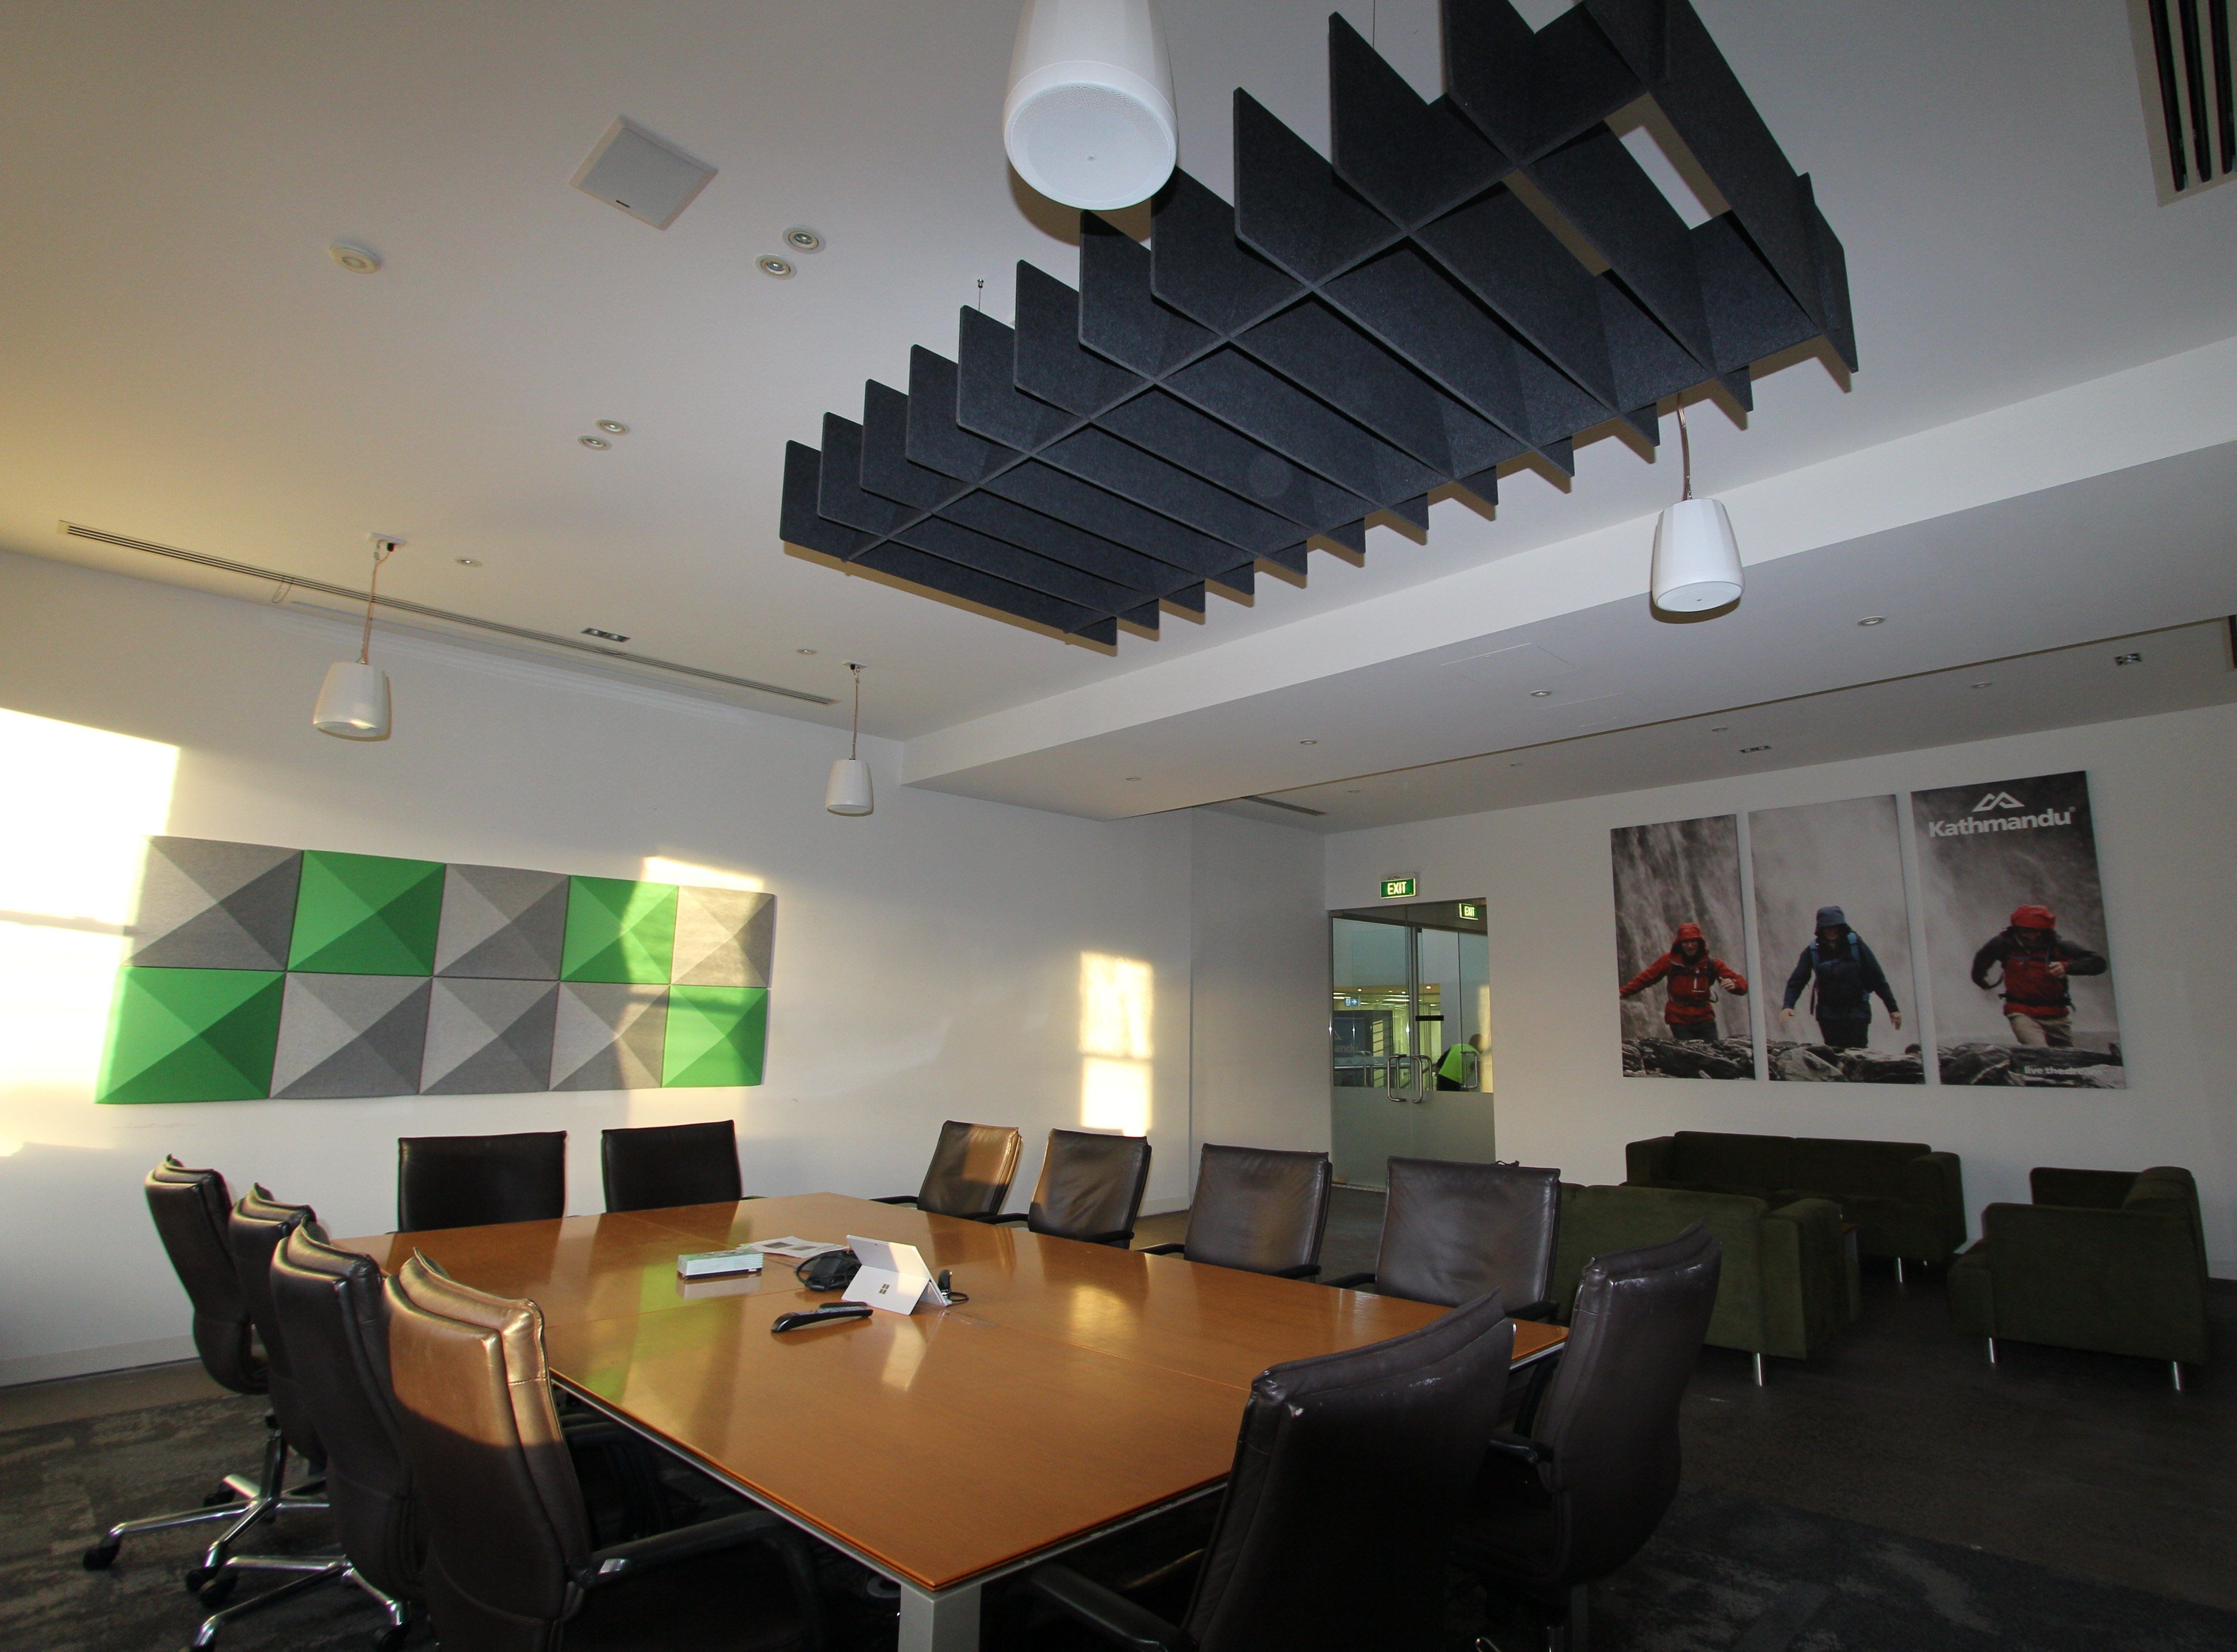 Kathmandu Office - Bach Commercial Series 5 - 37 Acoustic 3D Wall Tiles and Trapezium Acoustic Ceili